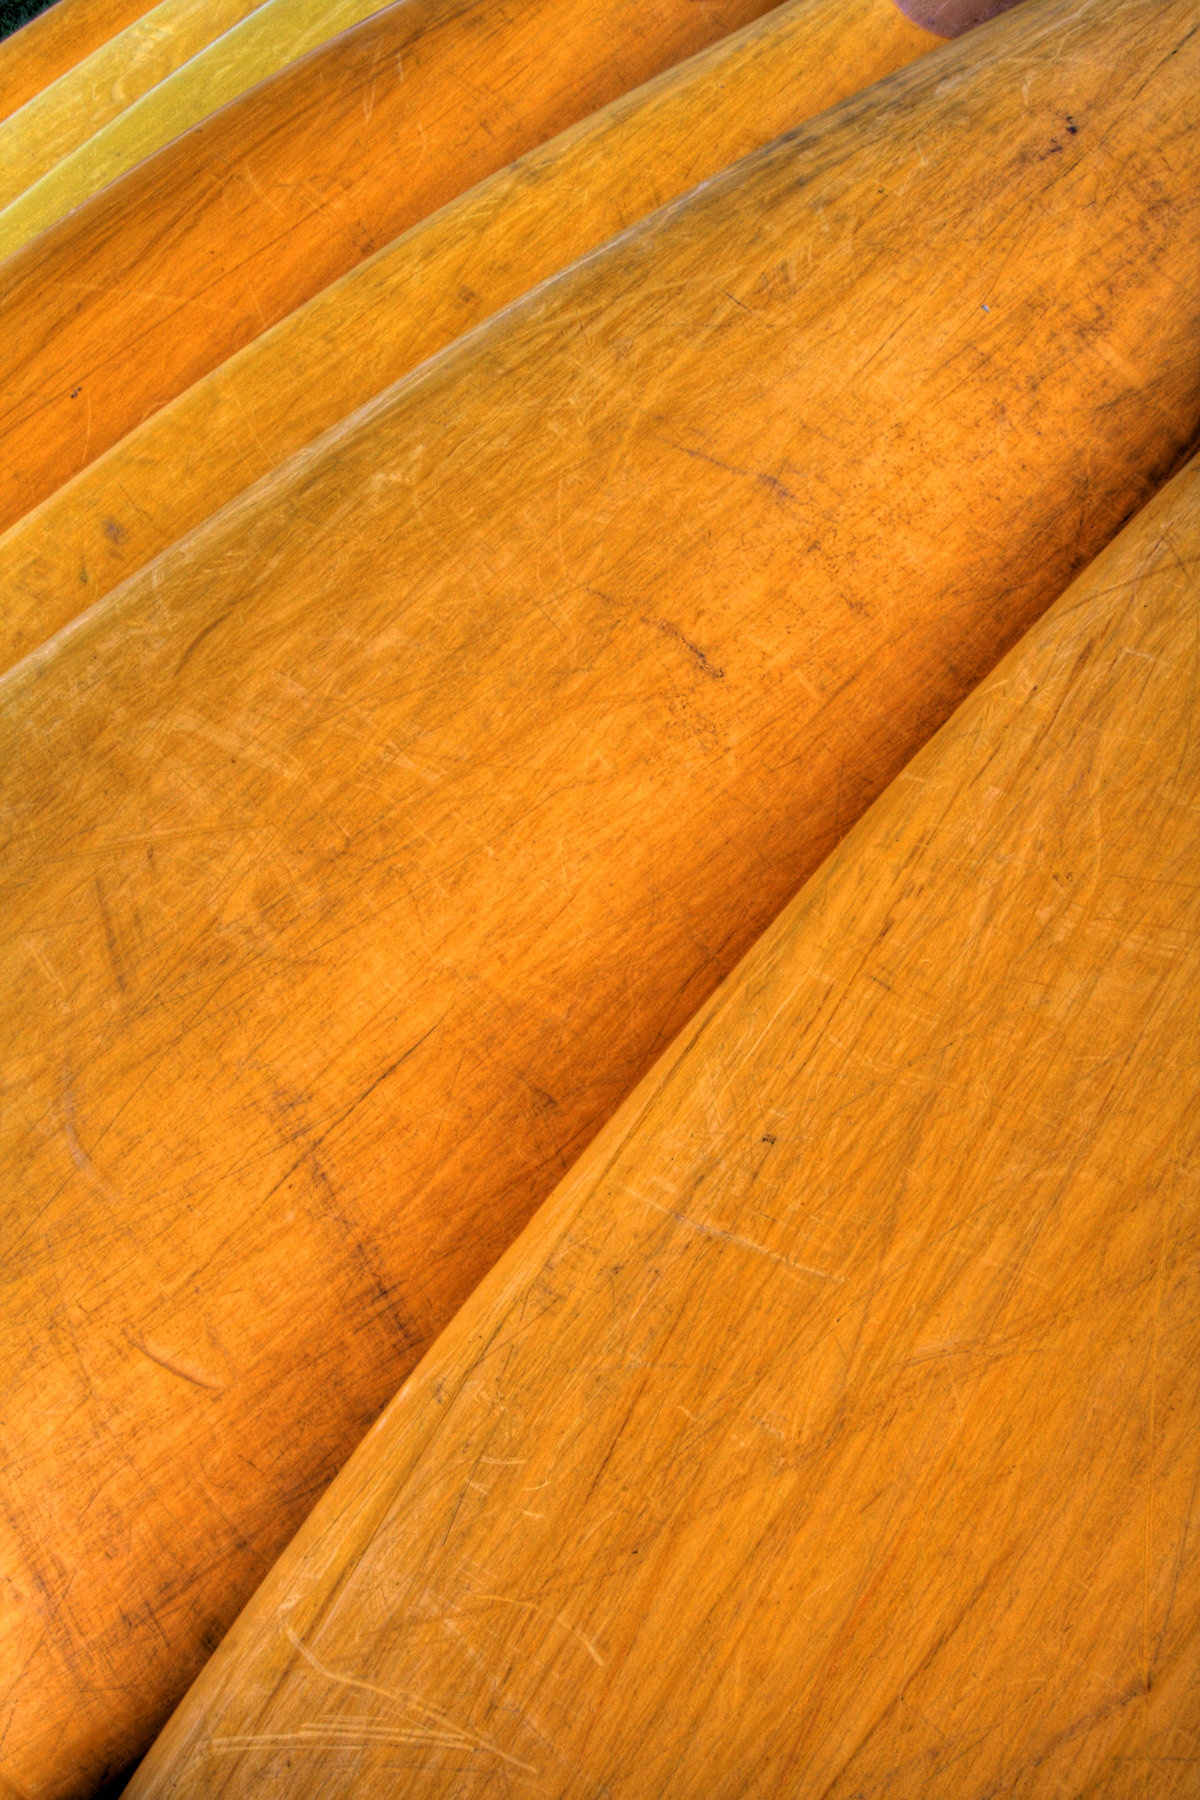 25+ Awesome Wood Textures For Free in High Resolution